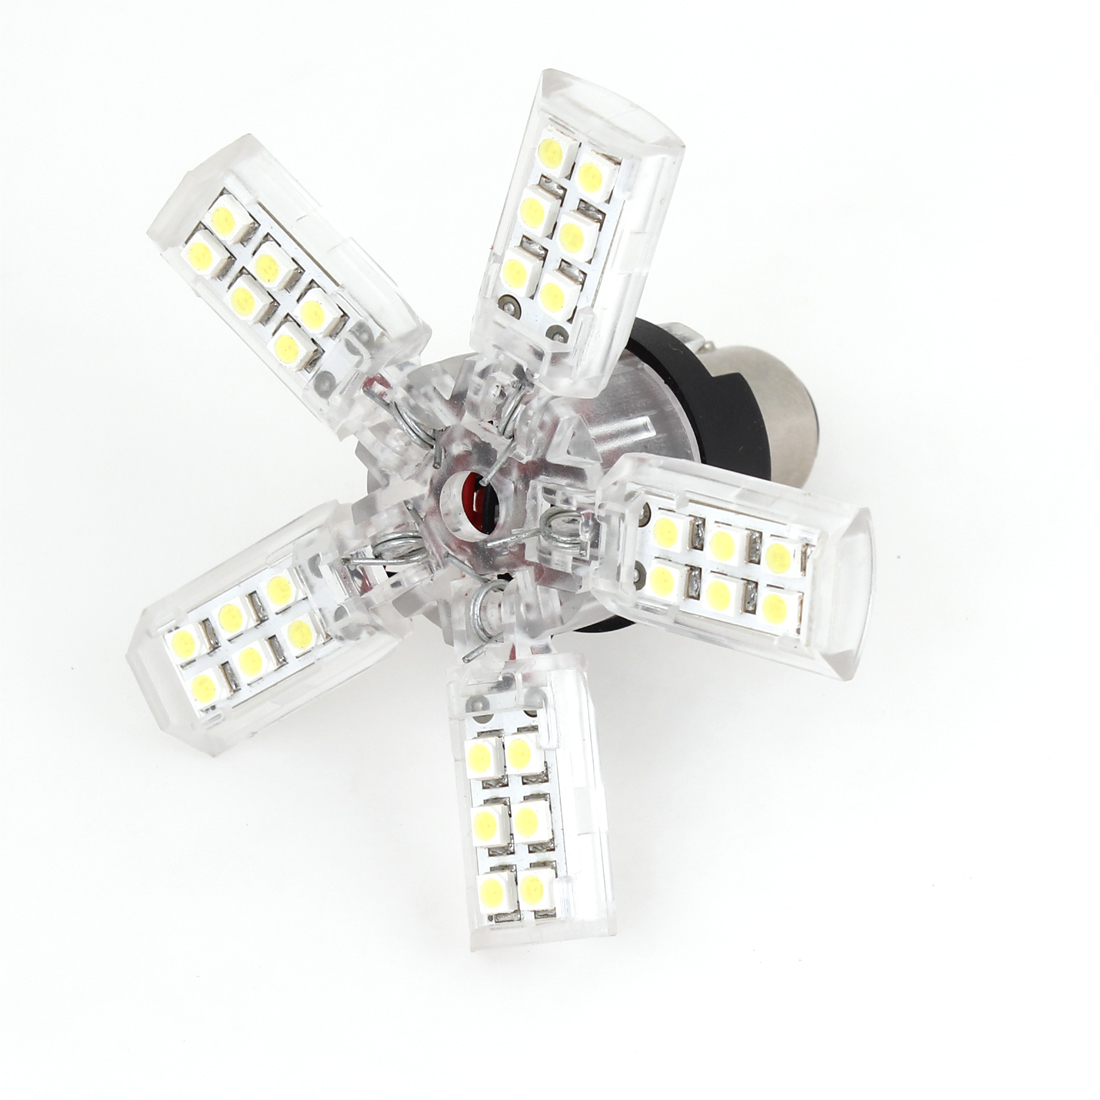 1157 White 40 LED 1210 SMD Spider Lite Brake Light Bulb for Auto Car